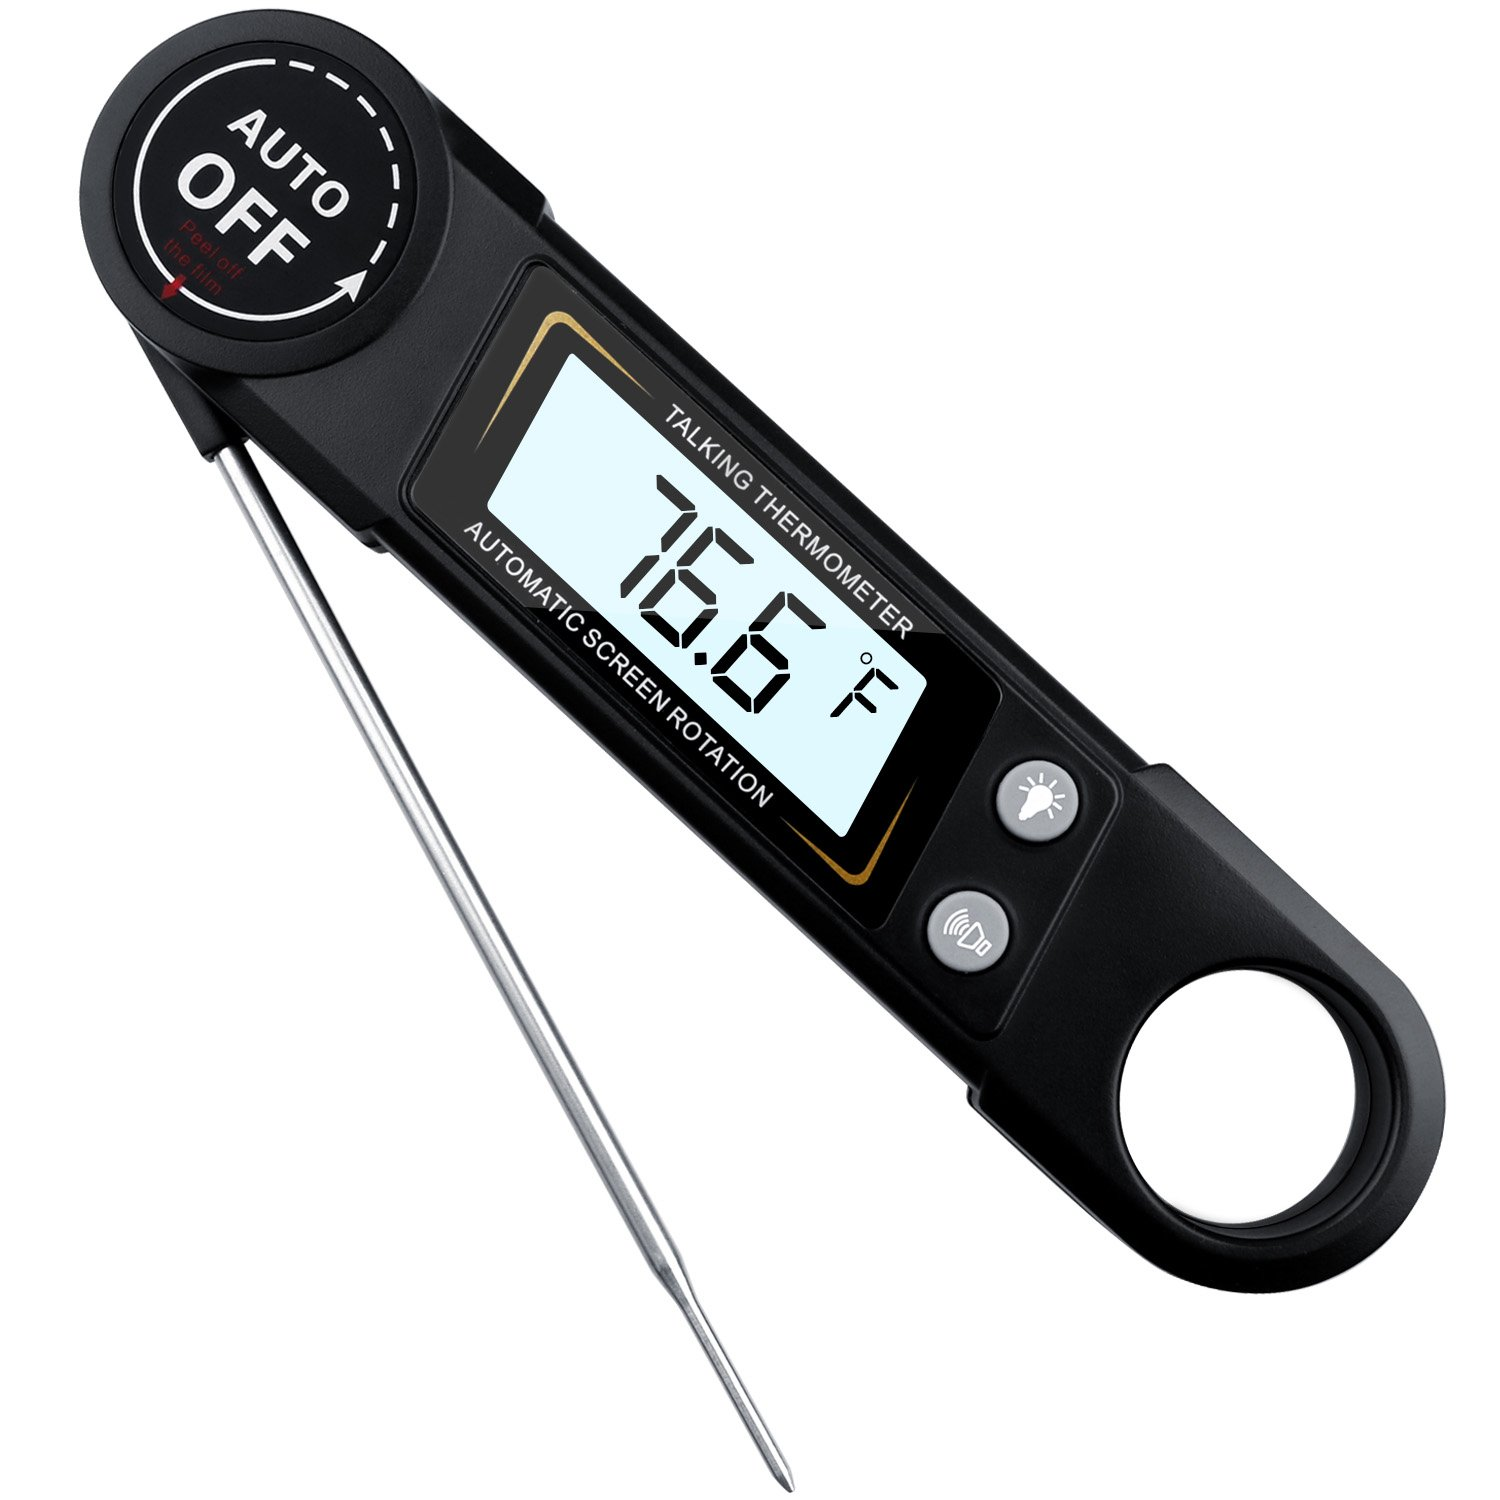 Meat Thermometer Foldable Digital Ultra Fast Talking Instant Read Thermometer With Calibration and Backlit Function for Cooking,Kitchen, BBQ, Grill (Black)